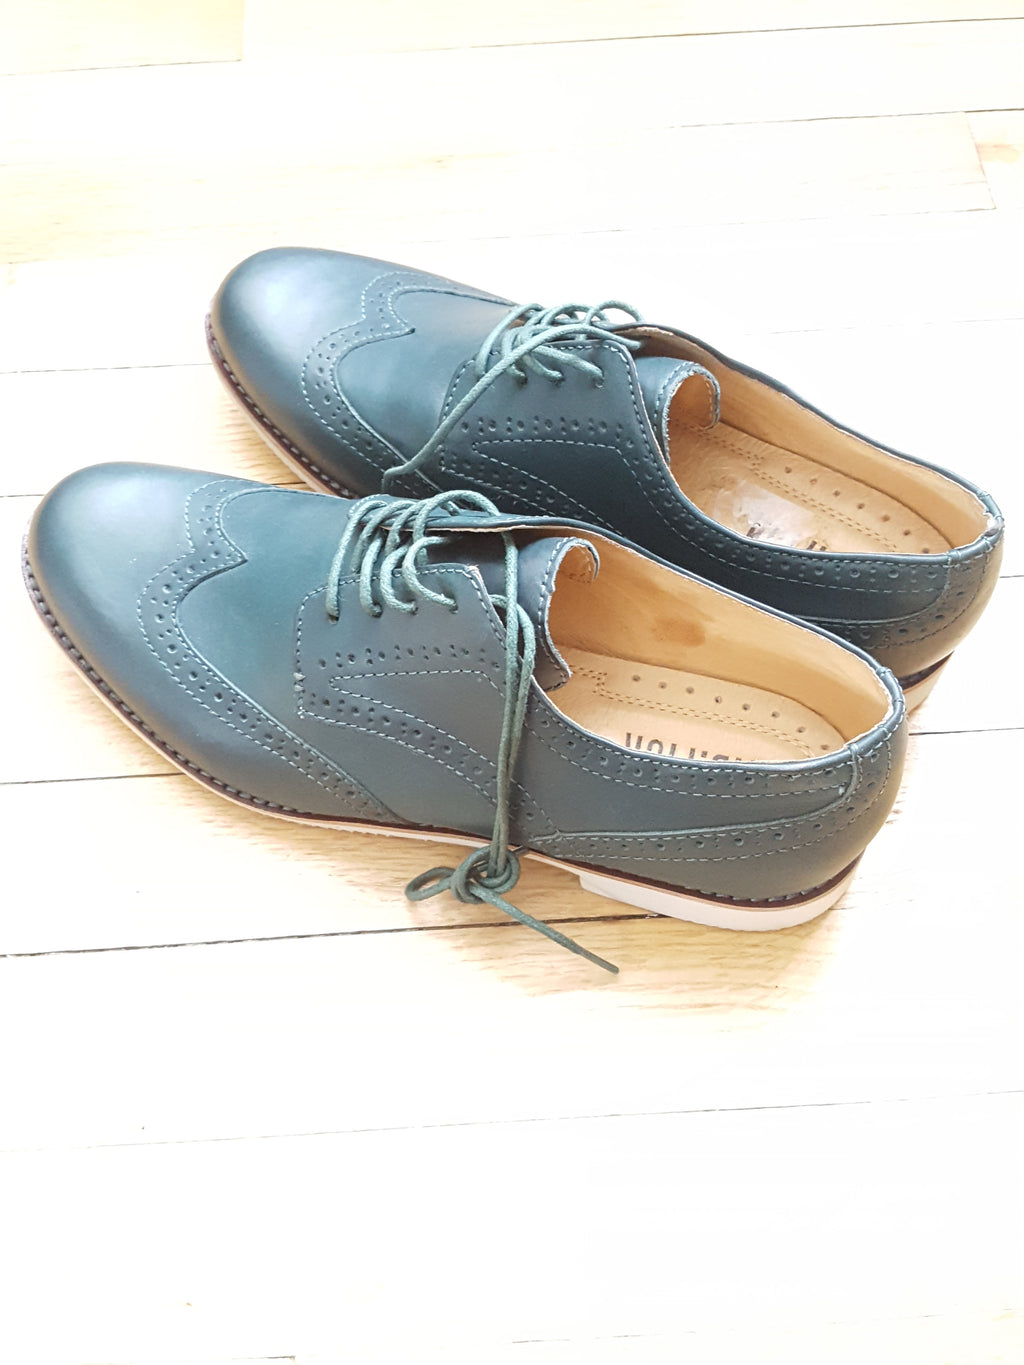 J.D.Fisk Oxfords size 9